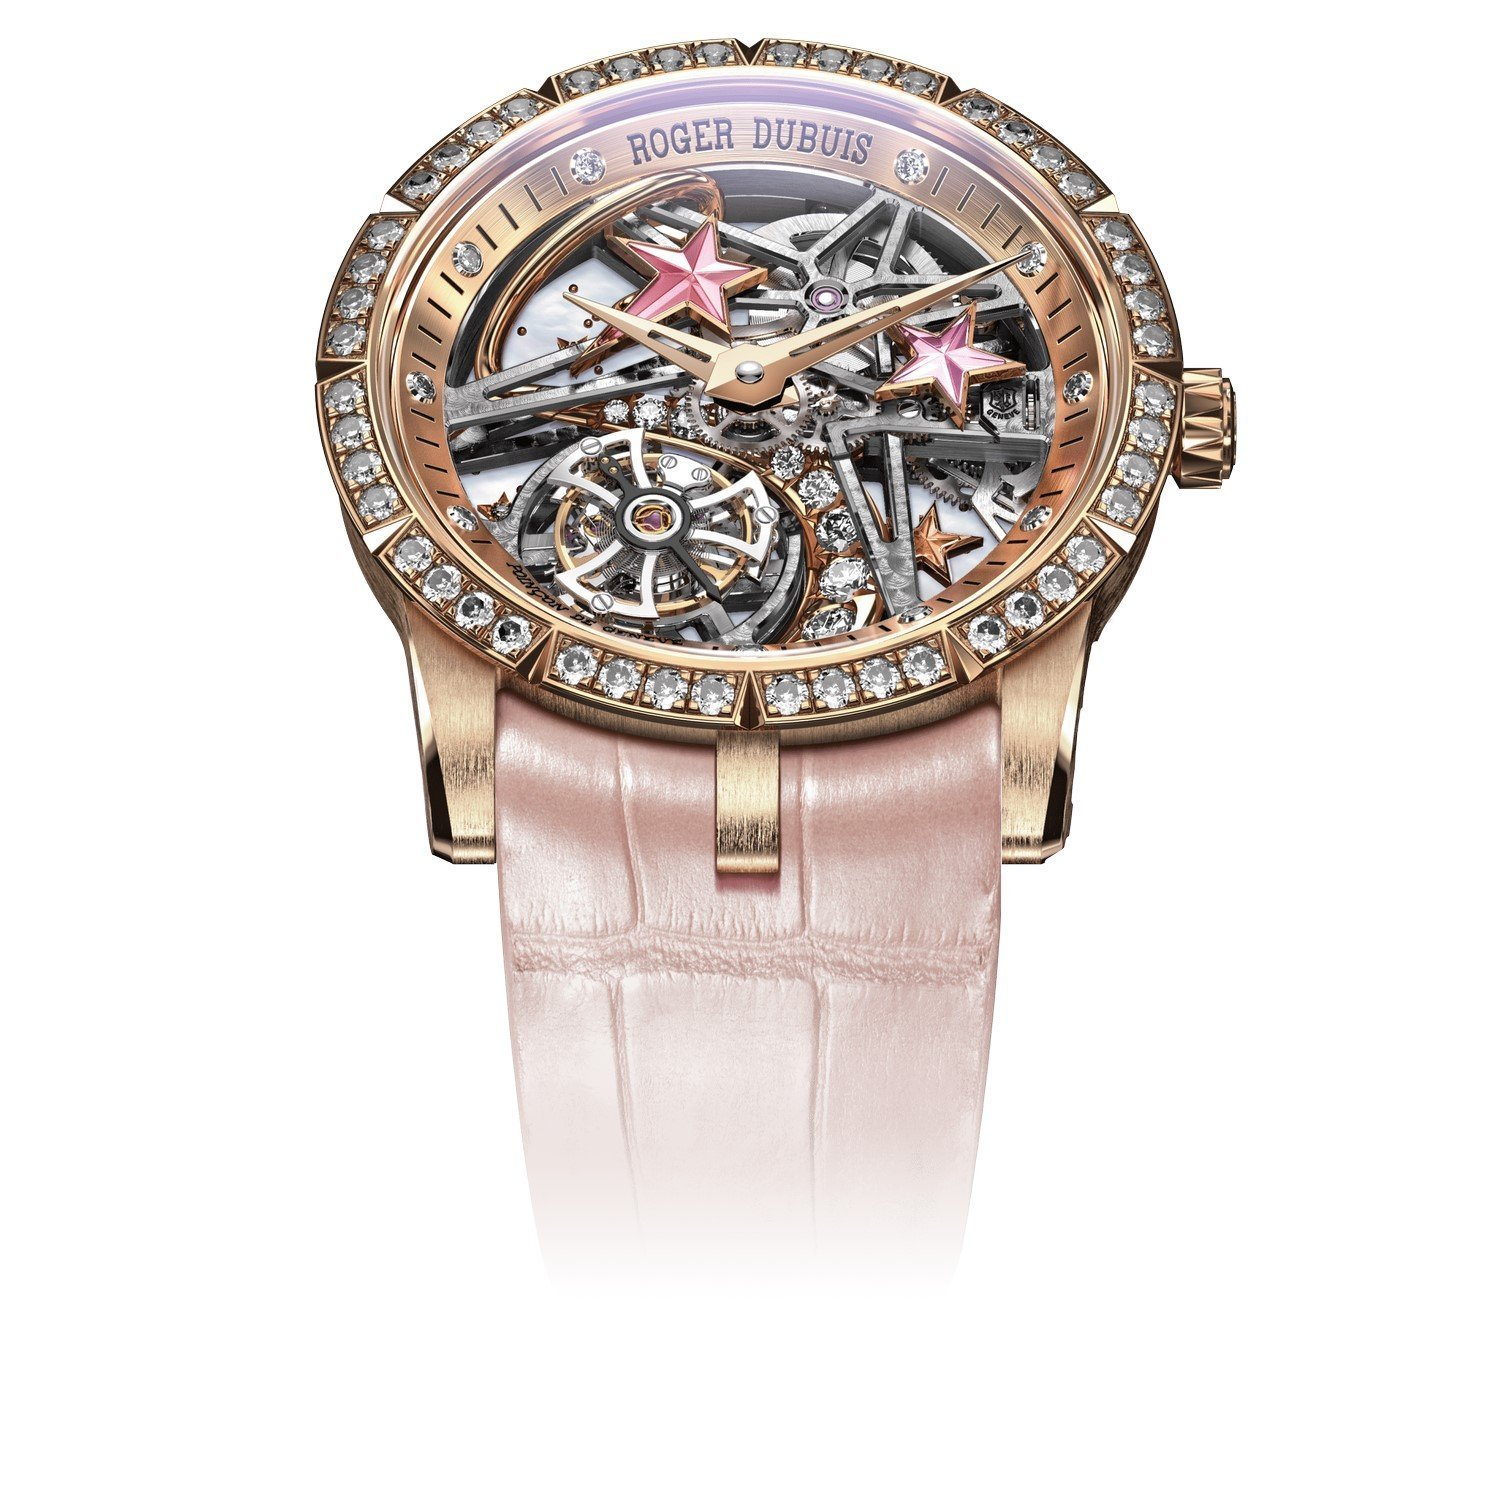 Montre Roger Dubuis Excalibur Original Shooting Star vue 2